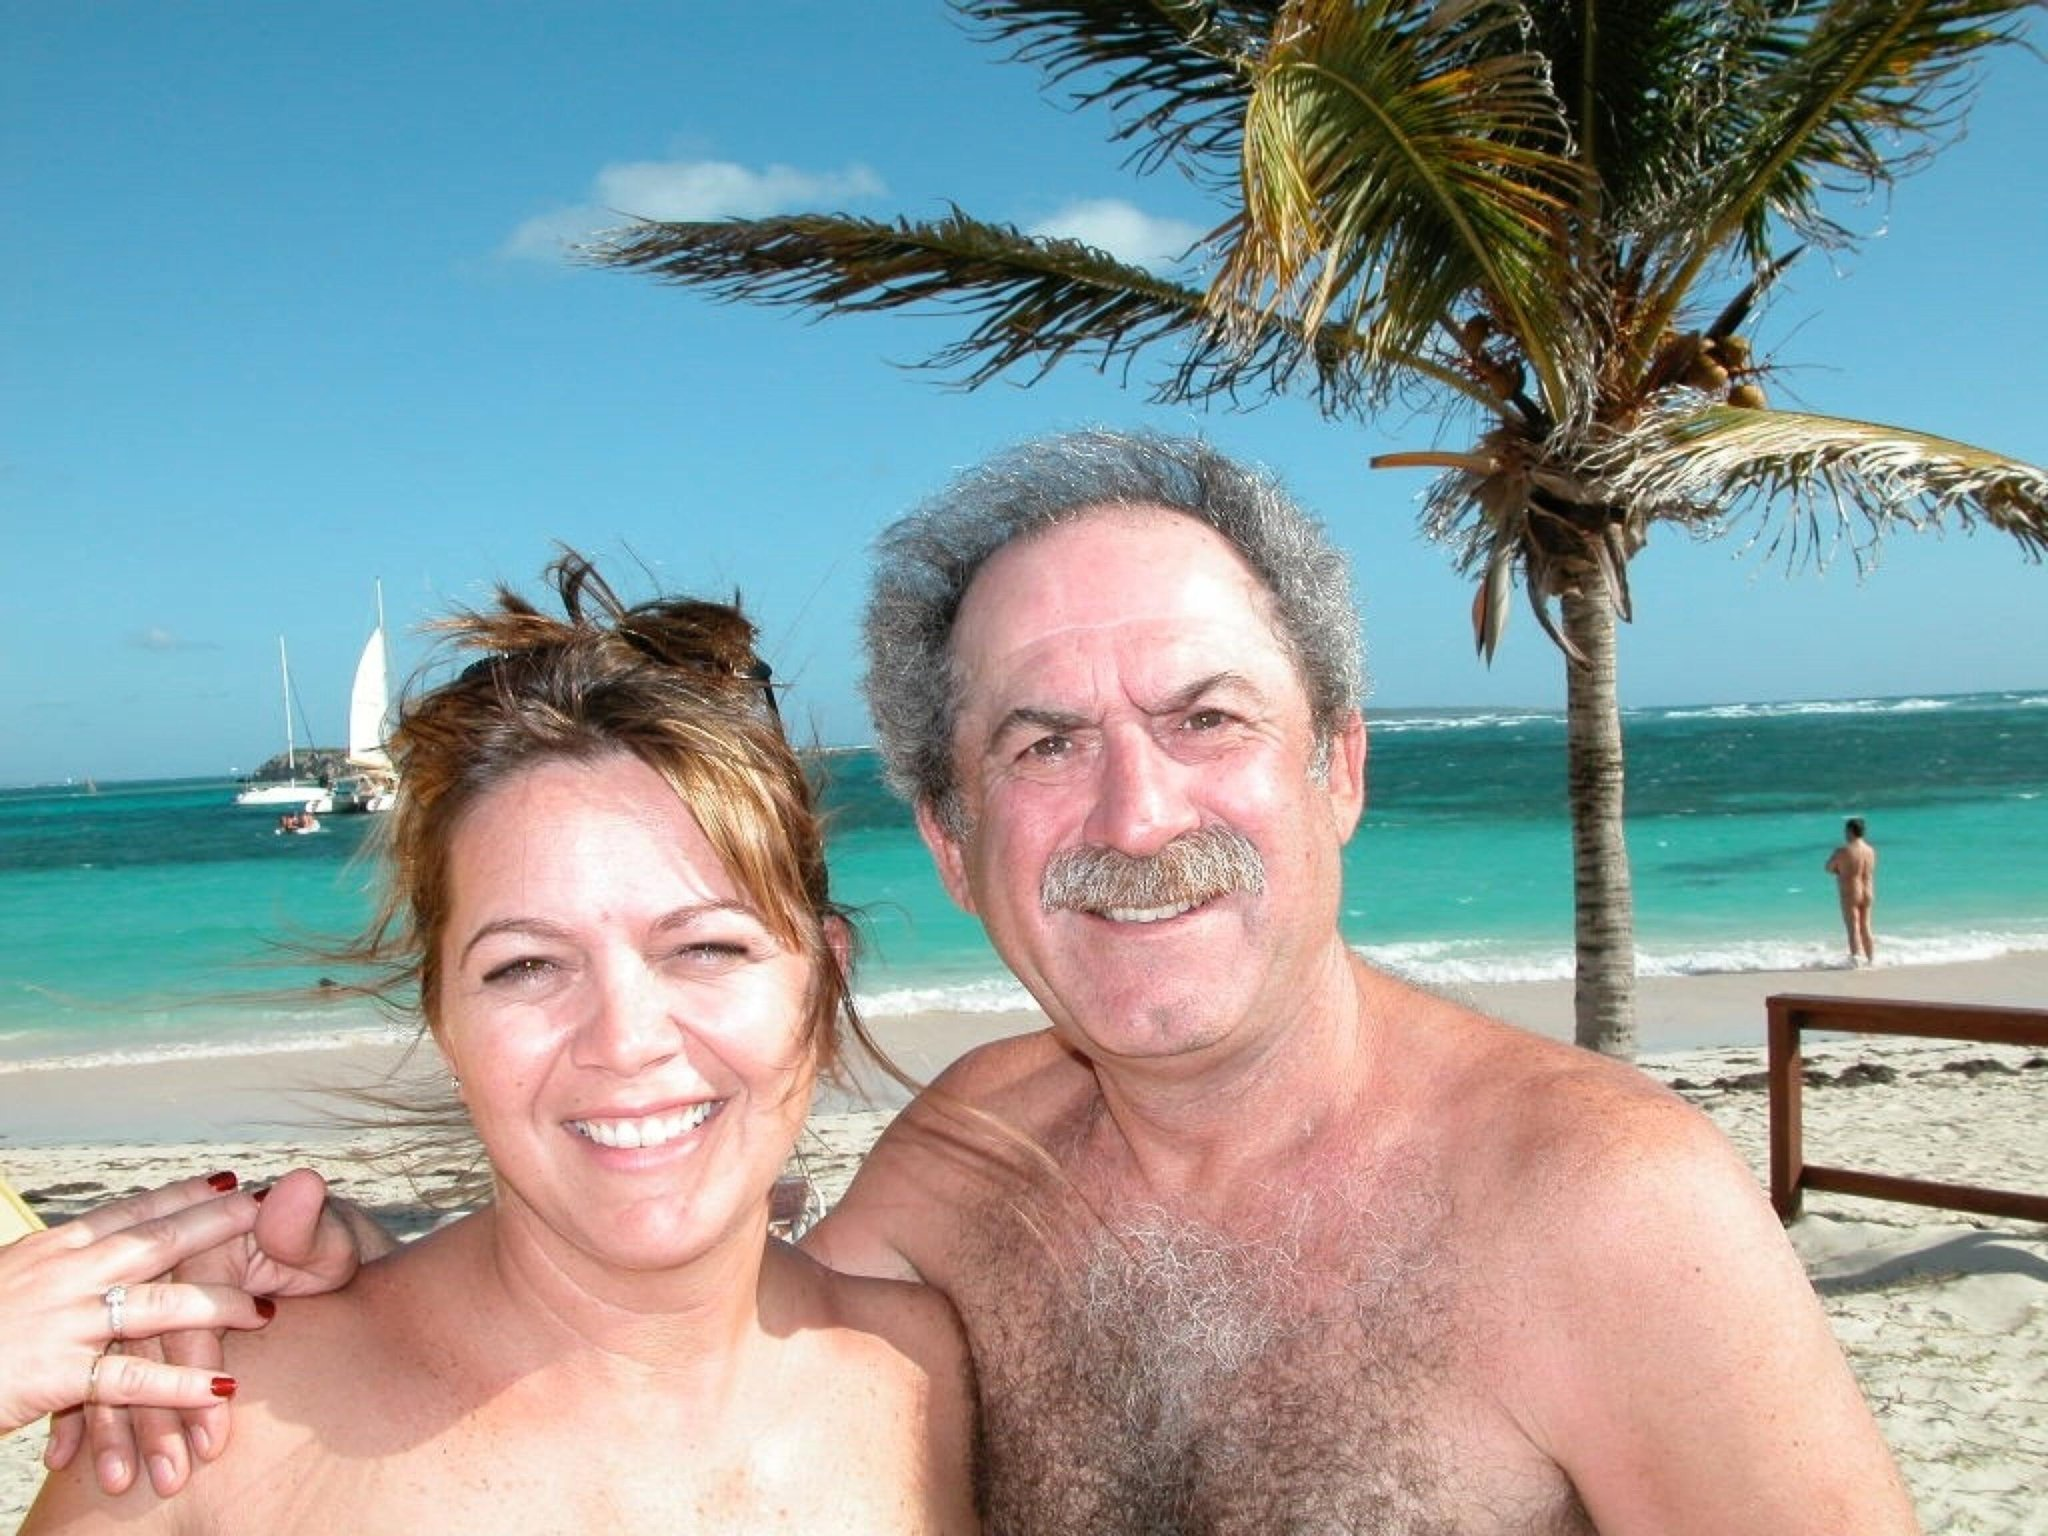 Becky Kevoian On Twitter Nude Beach Etiquette Check Out The Guy